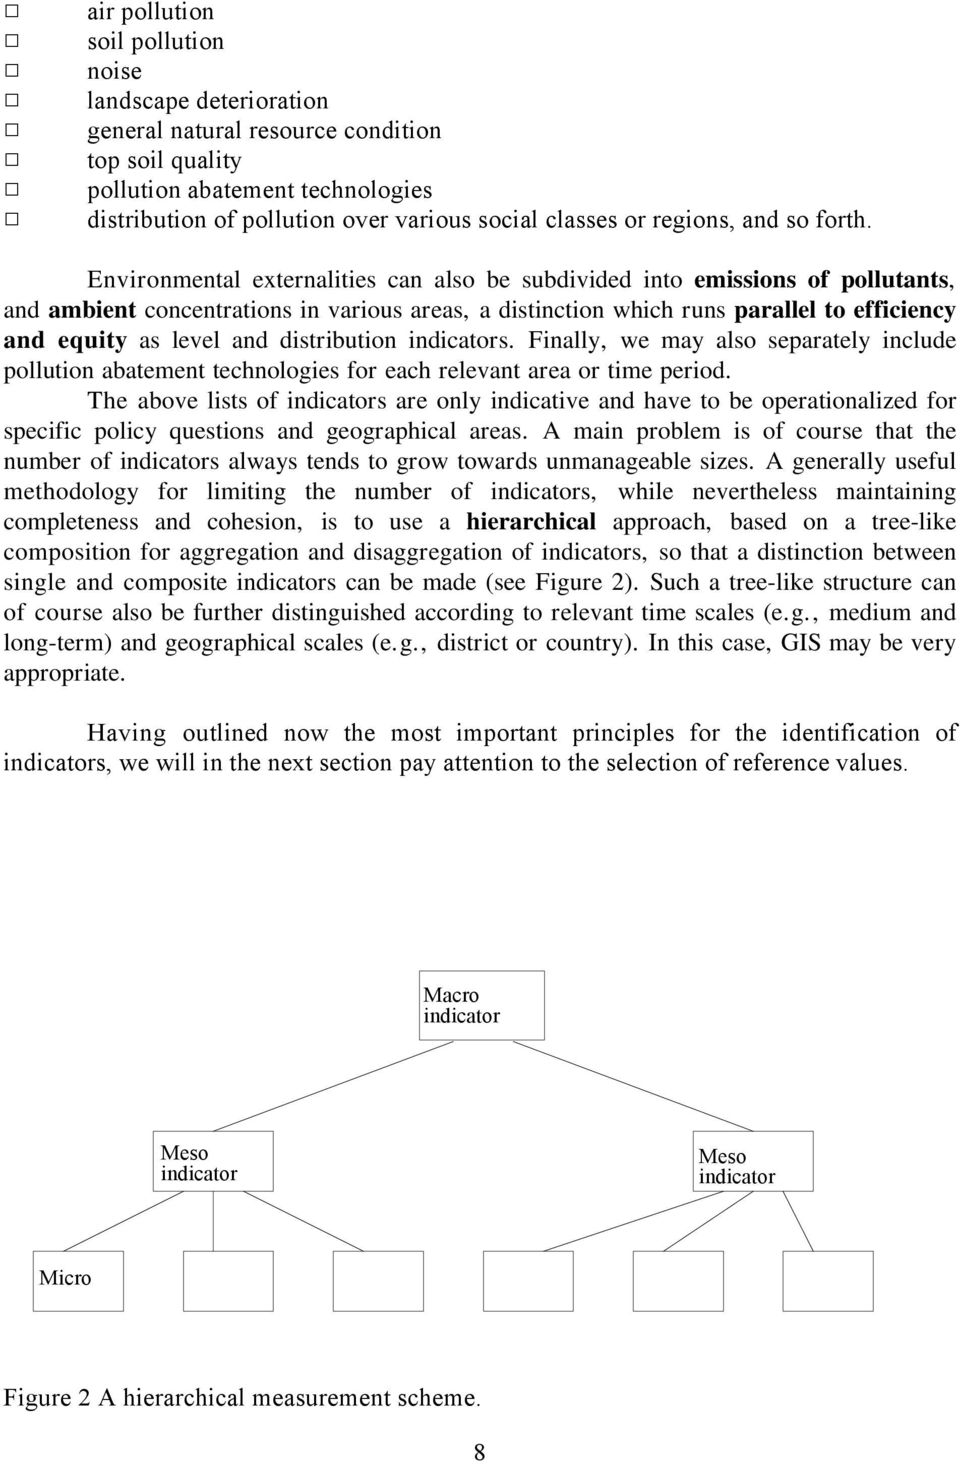 Environmental externalities can also be subdivided into emissions of pollutants, and ambient concentrations in various areas, a distinction which runs parallel to efficiency and equity as level and